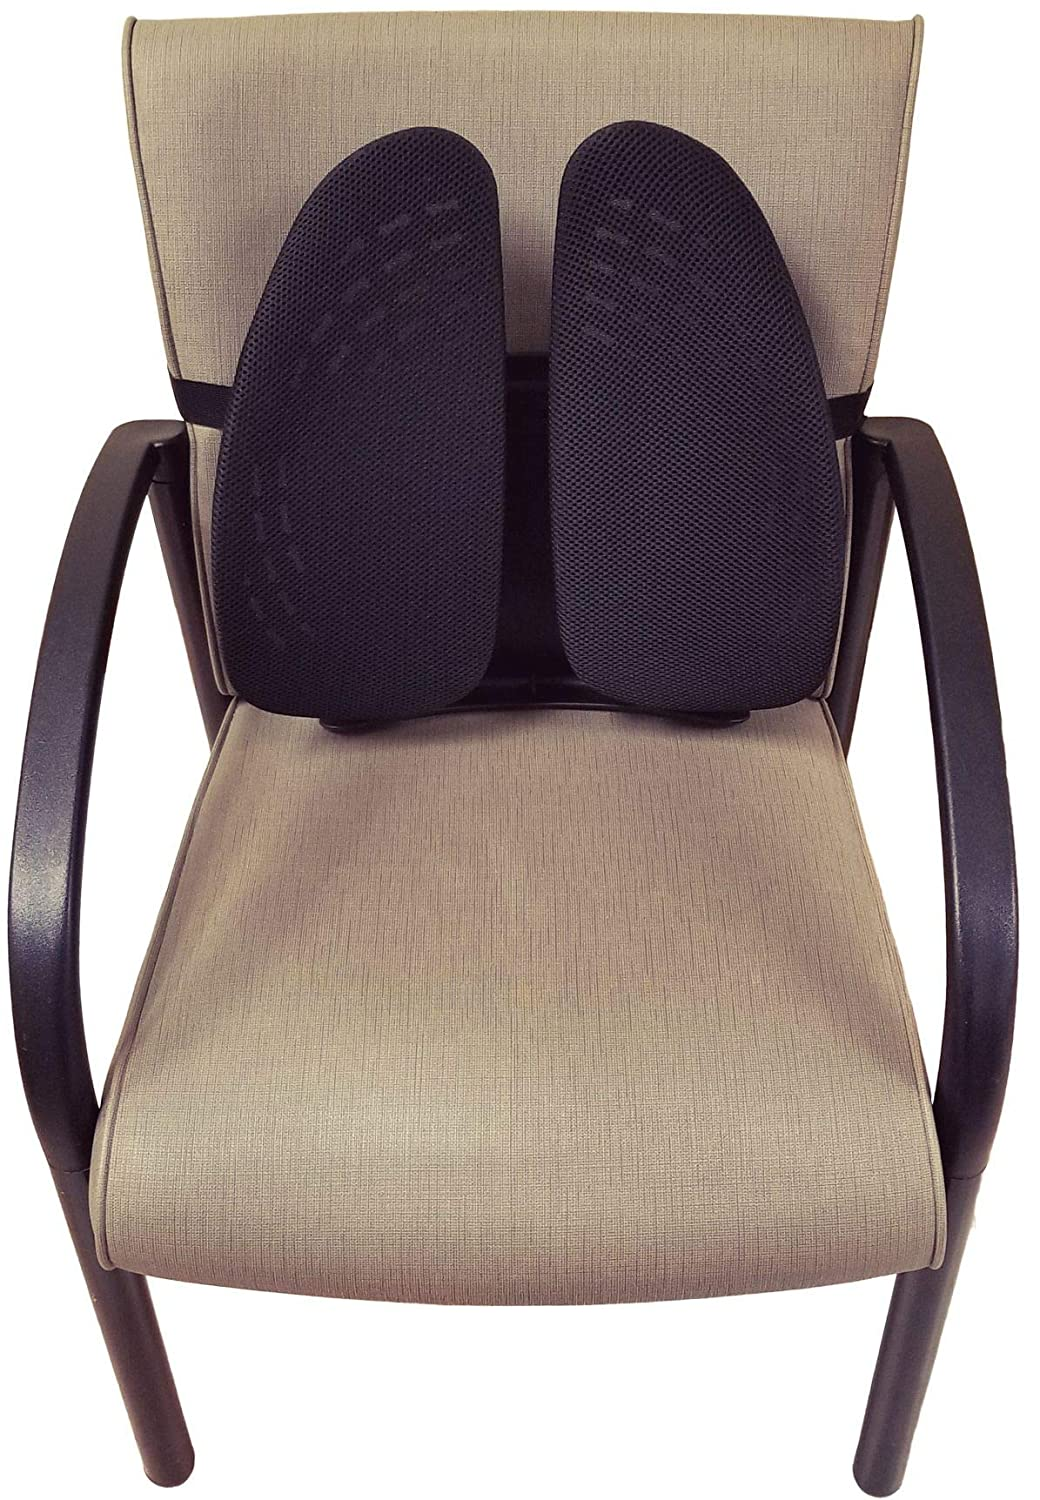 Back Pain Relief Lumbar Support Lower Back Pain Relief Devices: Back Support for Office Chair Car Plane Orthopedic Design for Lower Back Pain Support-Sciatica Relief- Posture Corrector Truck